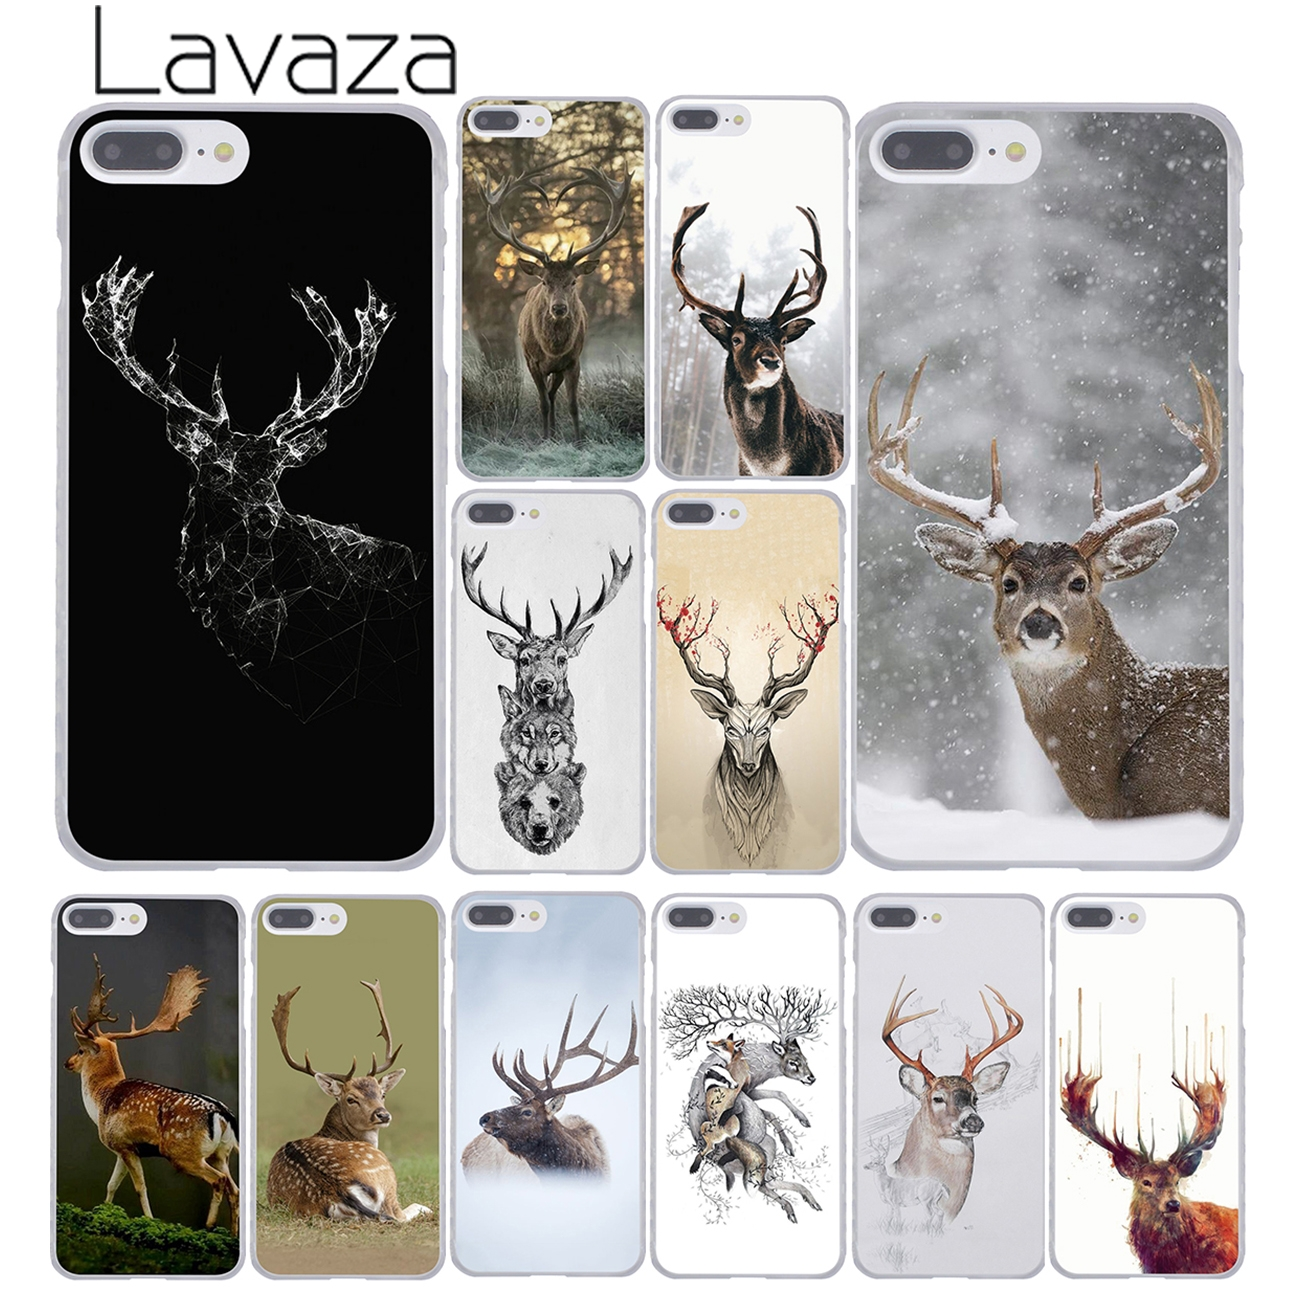 Lavaza Minimalist animal deer Minimalistic animals deer Hard Phone Case for Apple iPhone ...